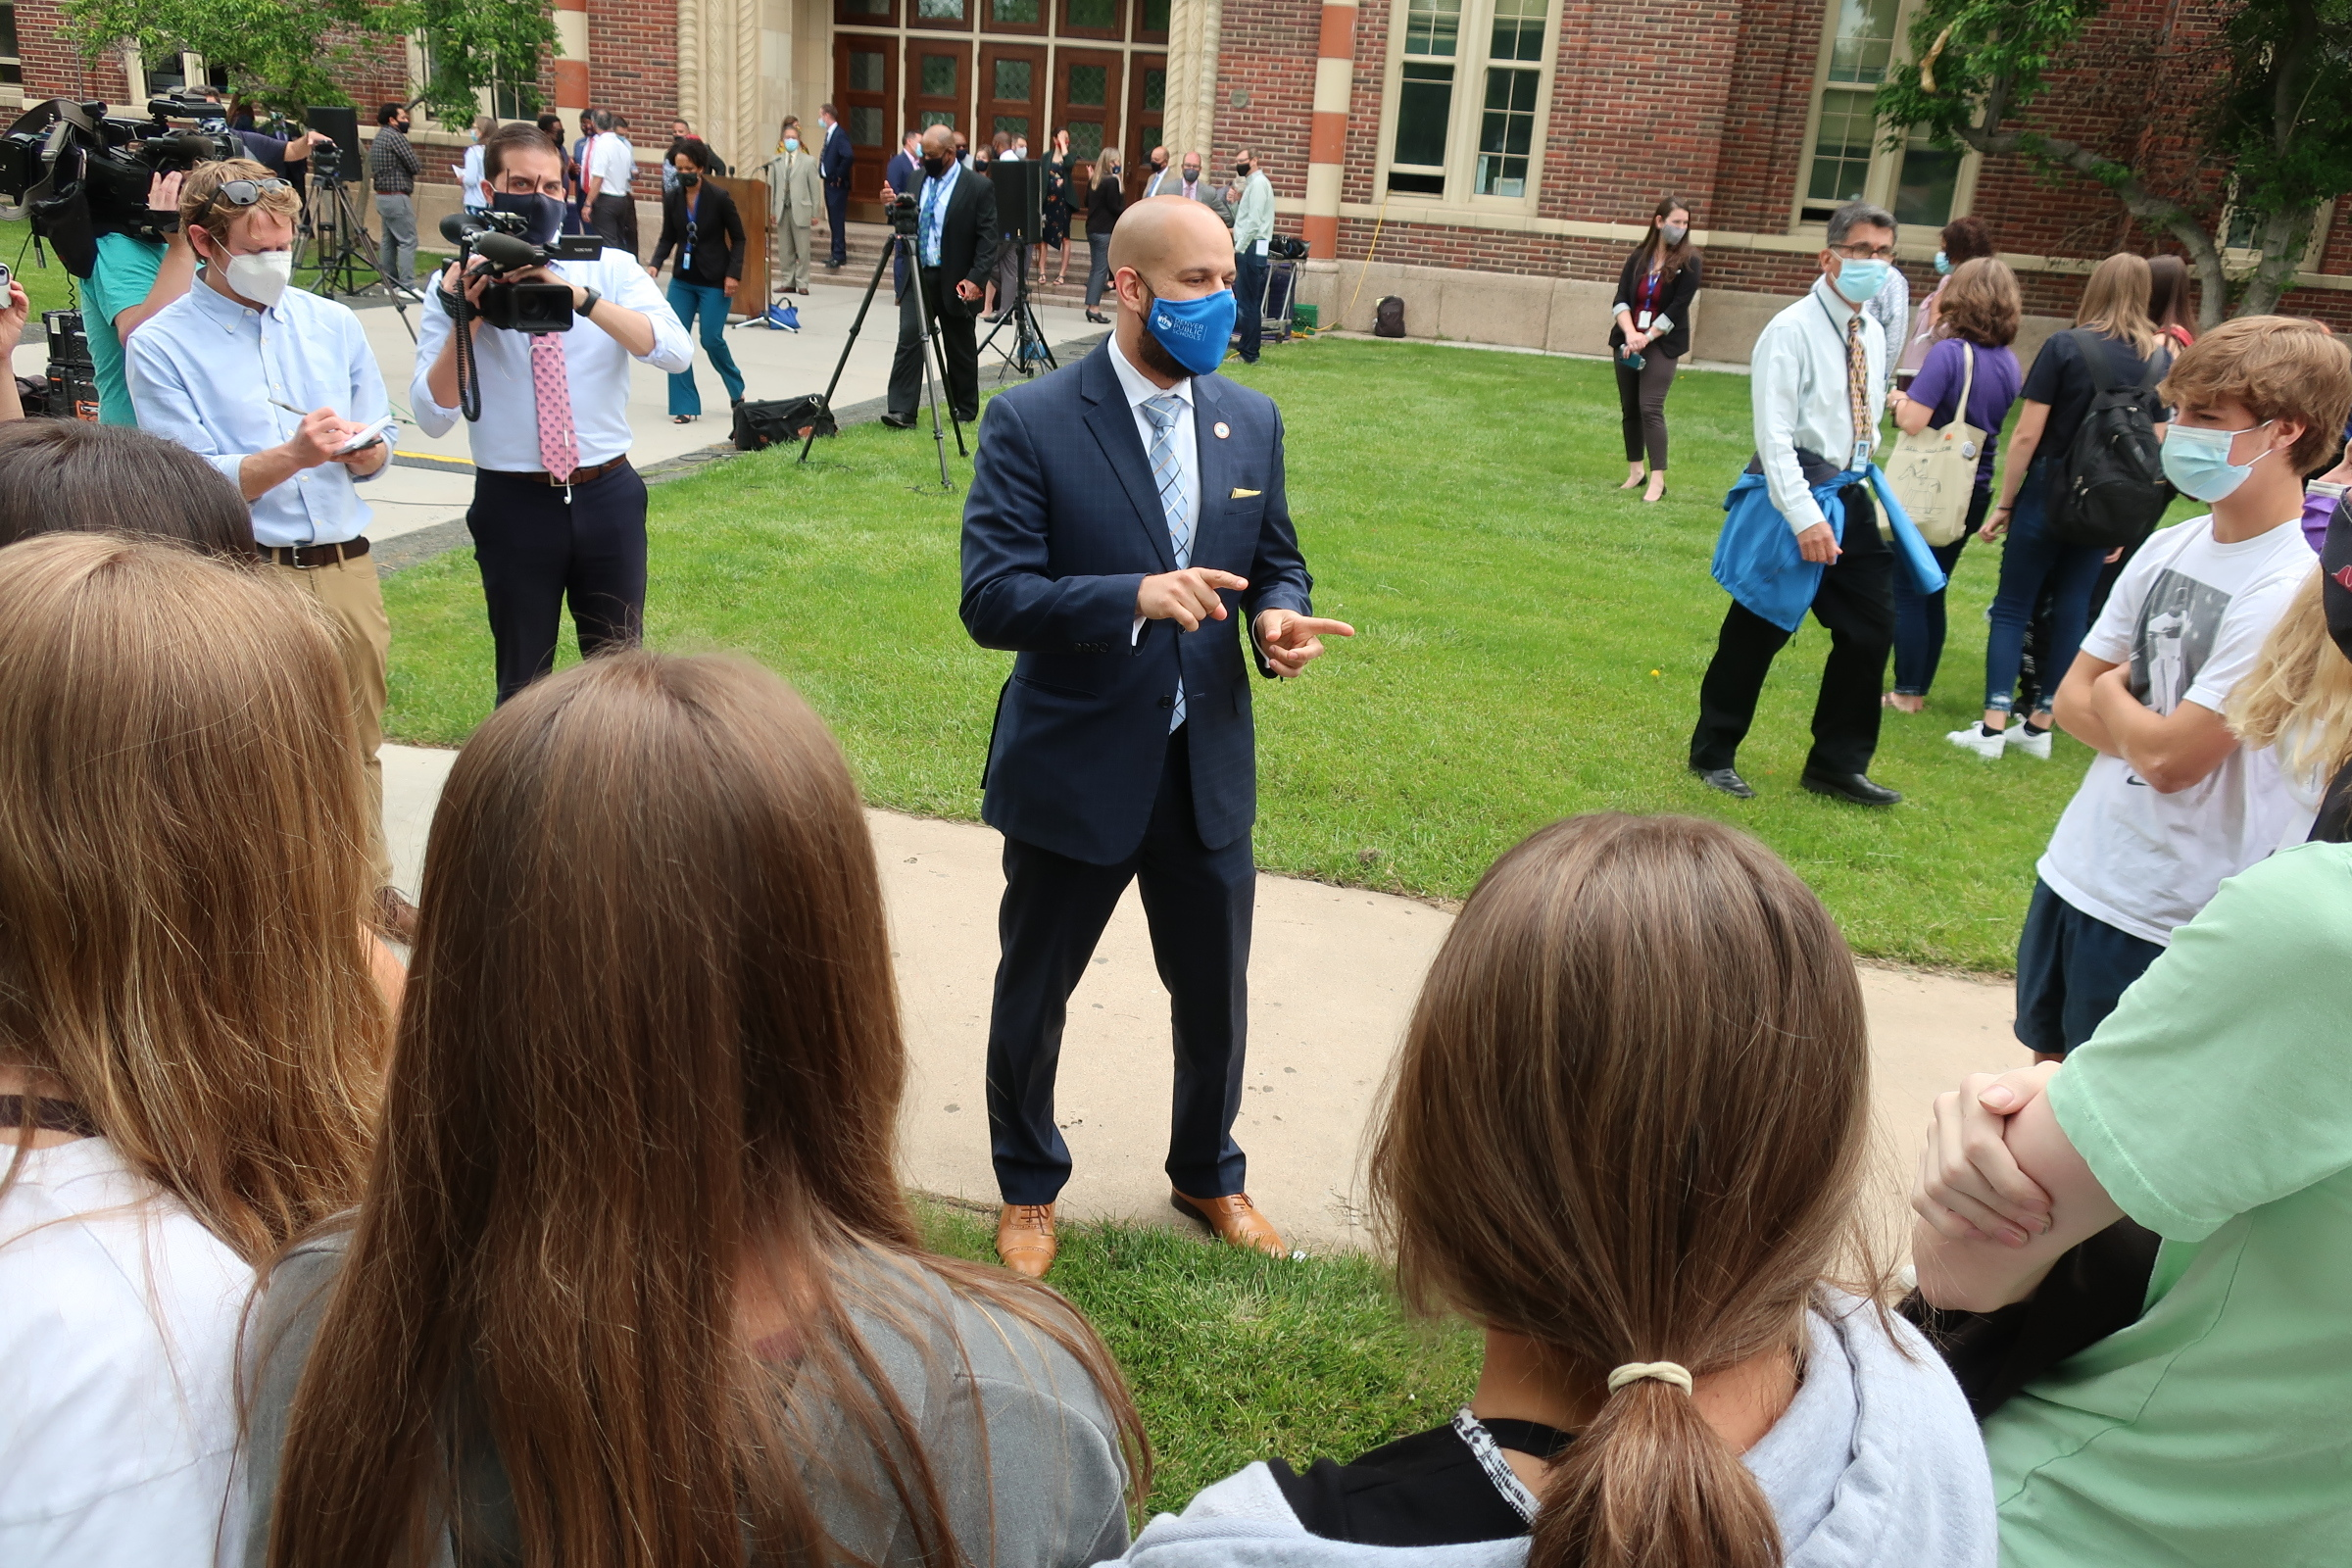 Dr. Alex Marrero, who was chosen by Denver Public Schools to be its new superintendent, speaks to South High School students after a press conference announcing his appointment on Wednesday, May 26, 2021.